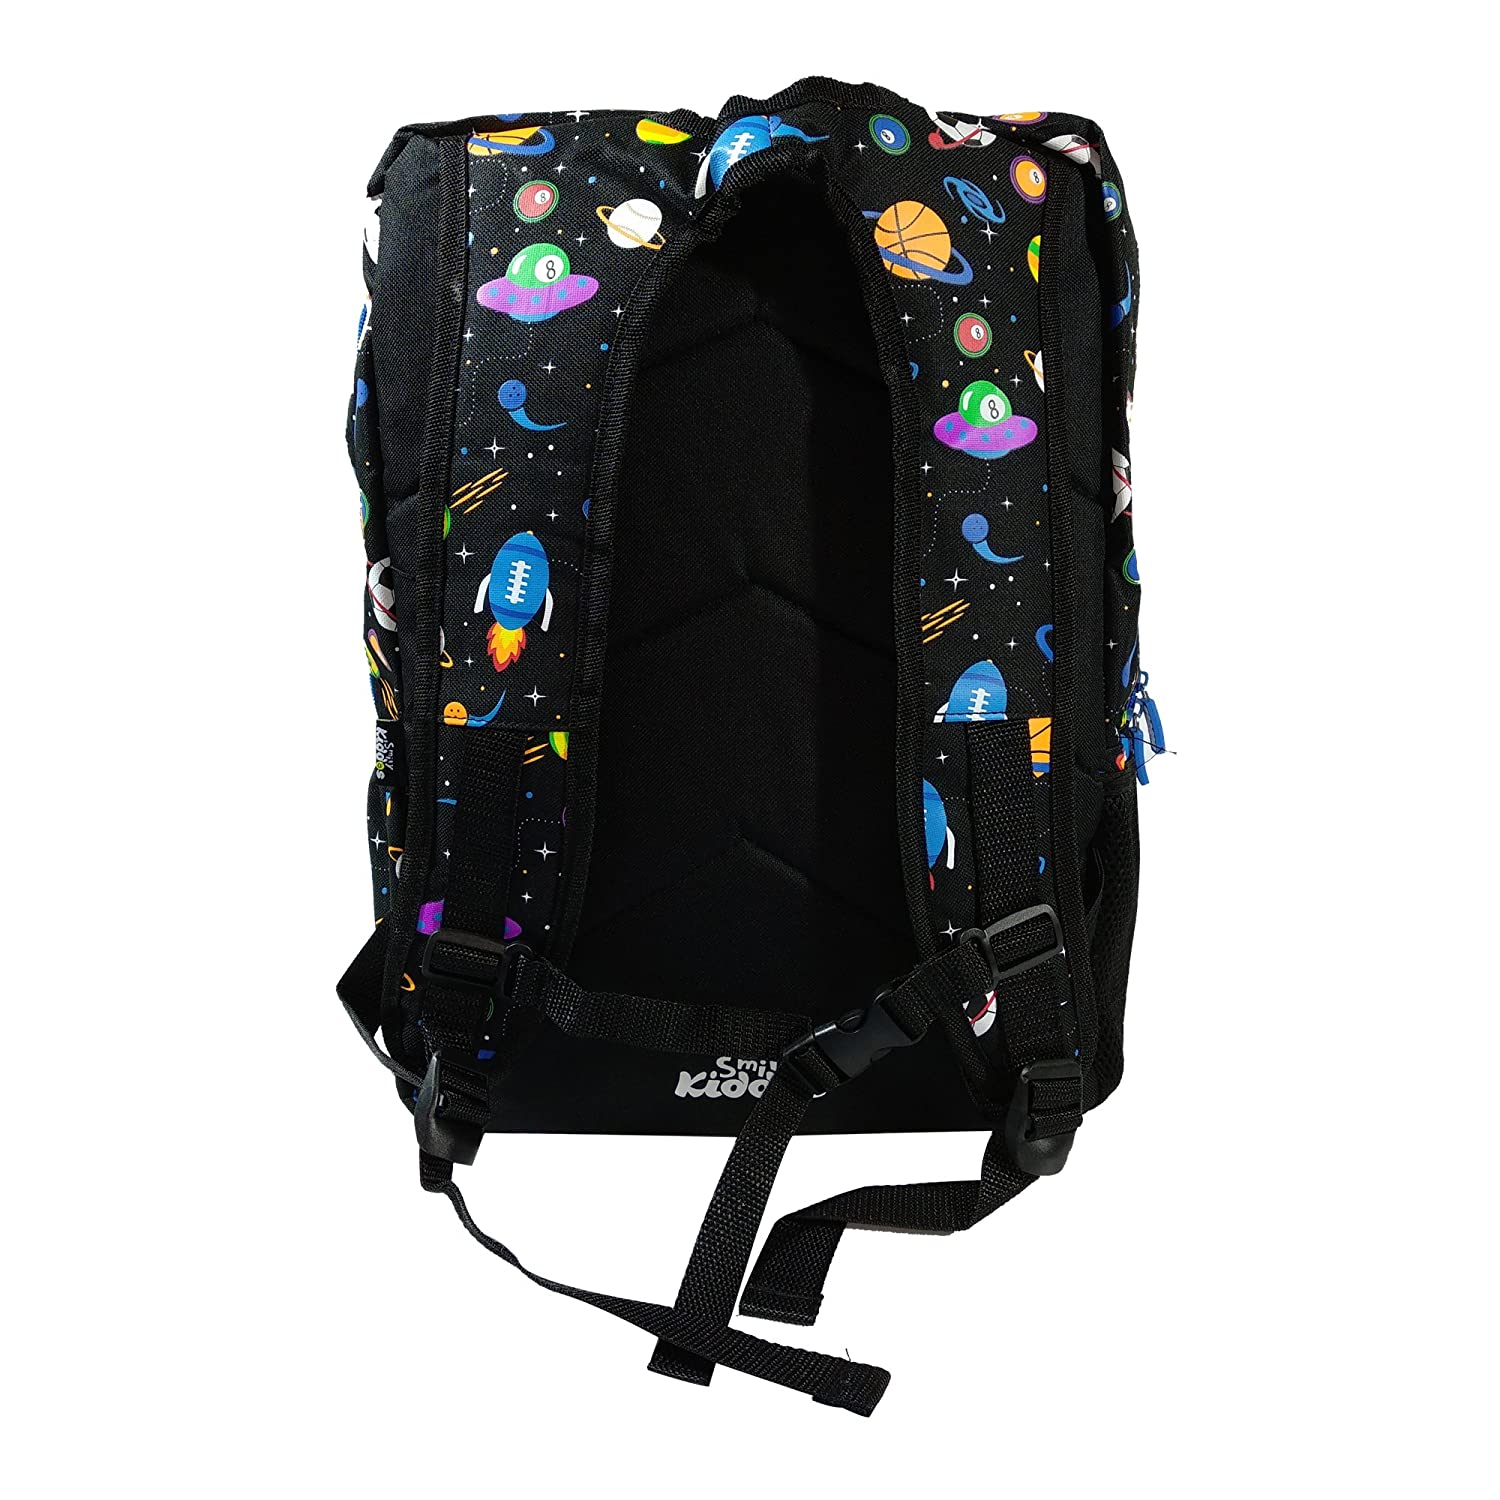 7ffc9ab05ee Smily Kiddos Fantasy Foldover Polyester Backpack (Black)   Kids School  Backpacks   School Bags Online  Amazon.in  Bags, Wallets   Luggage